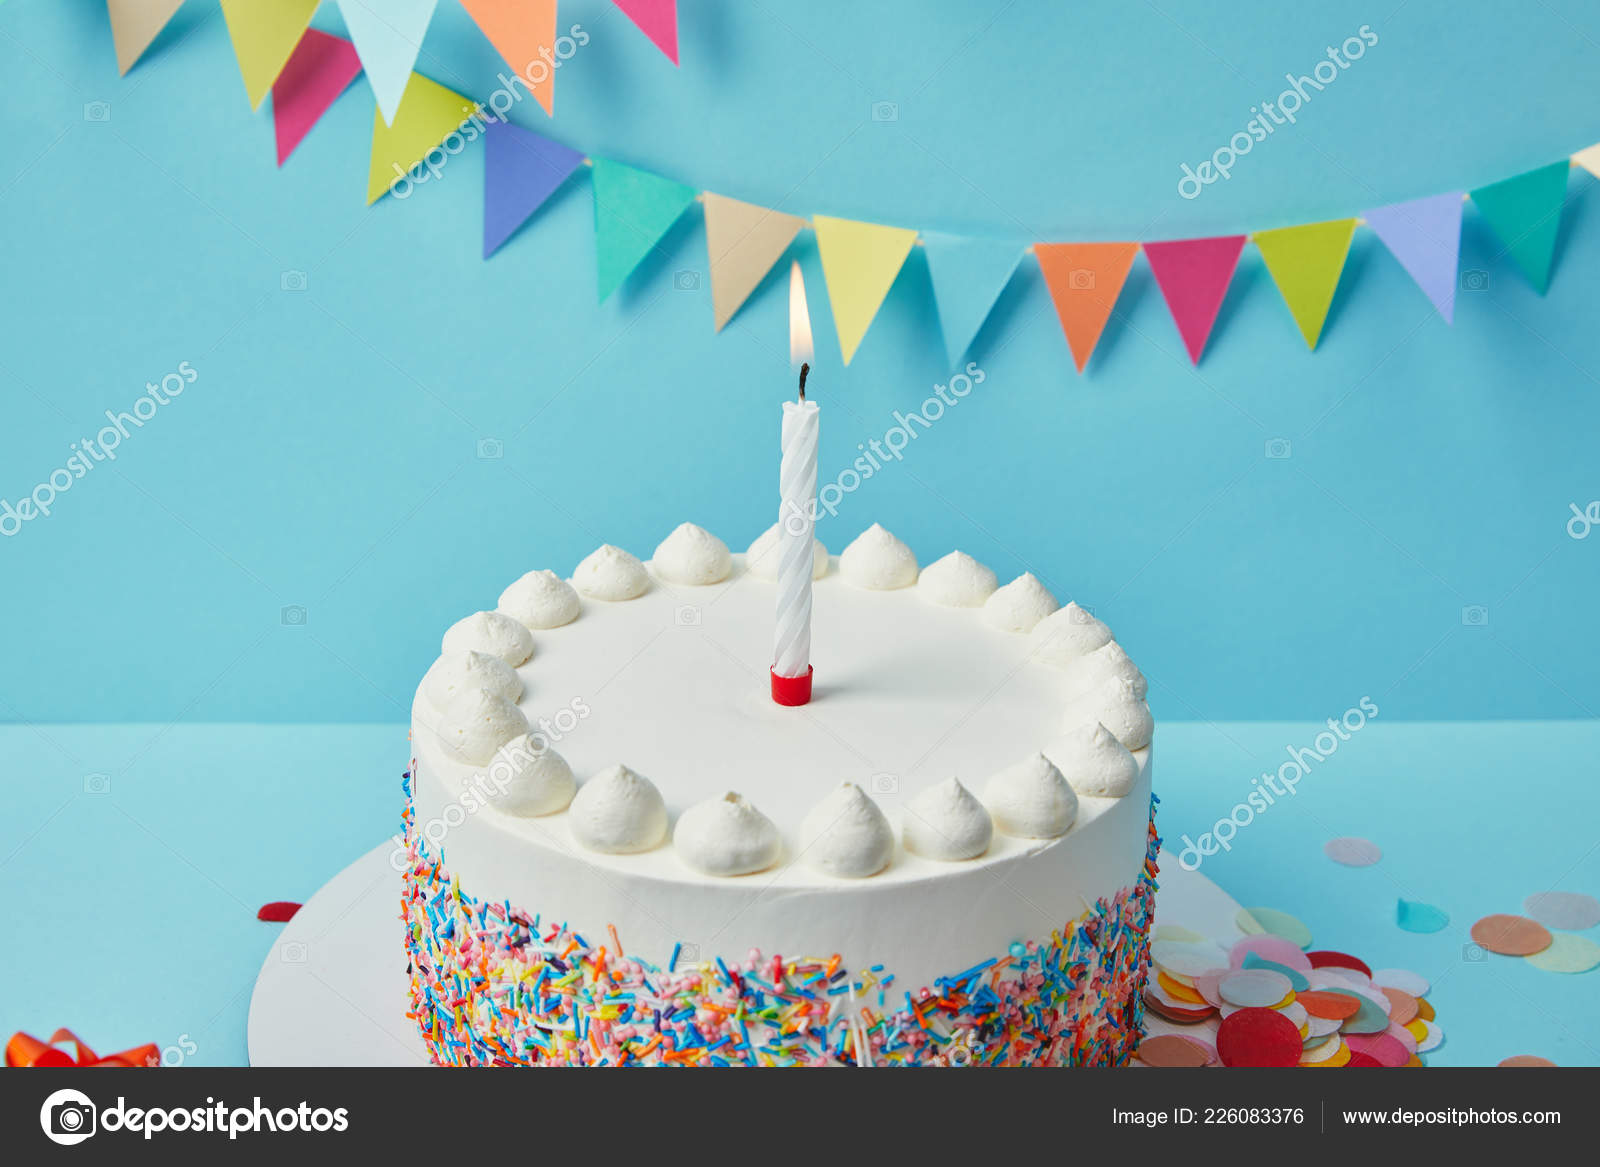 Candle Birthday Cake Sugar Sprinkles Blue Background Bunting Stock Photo